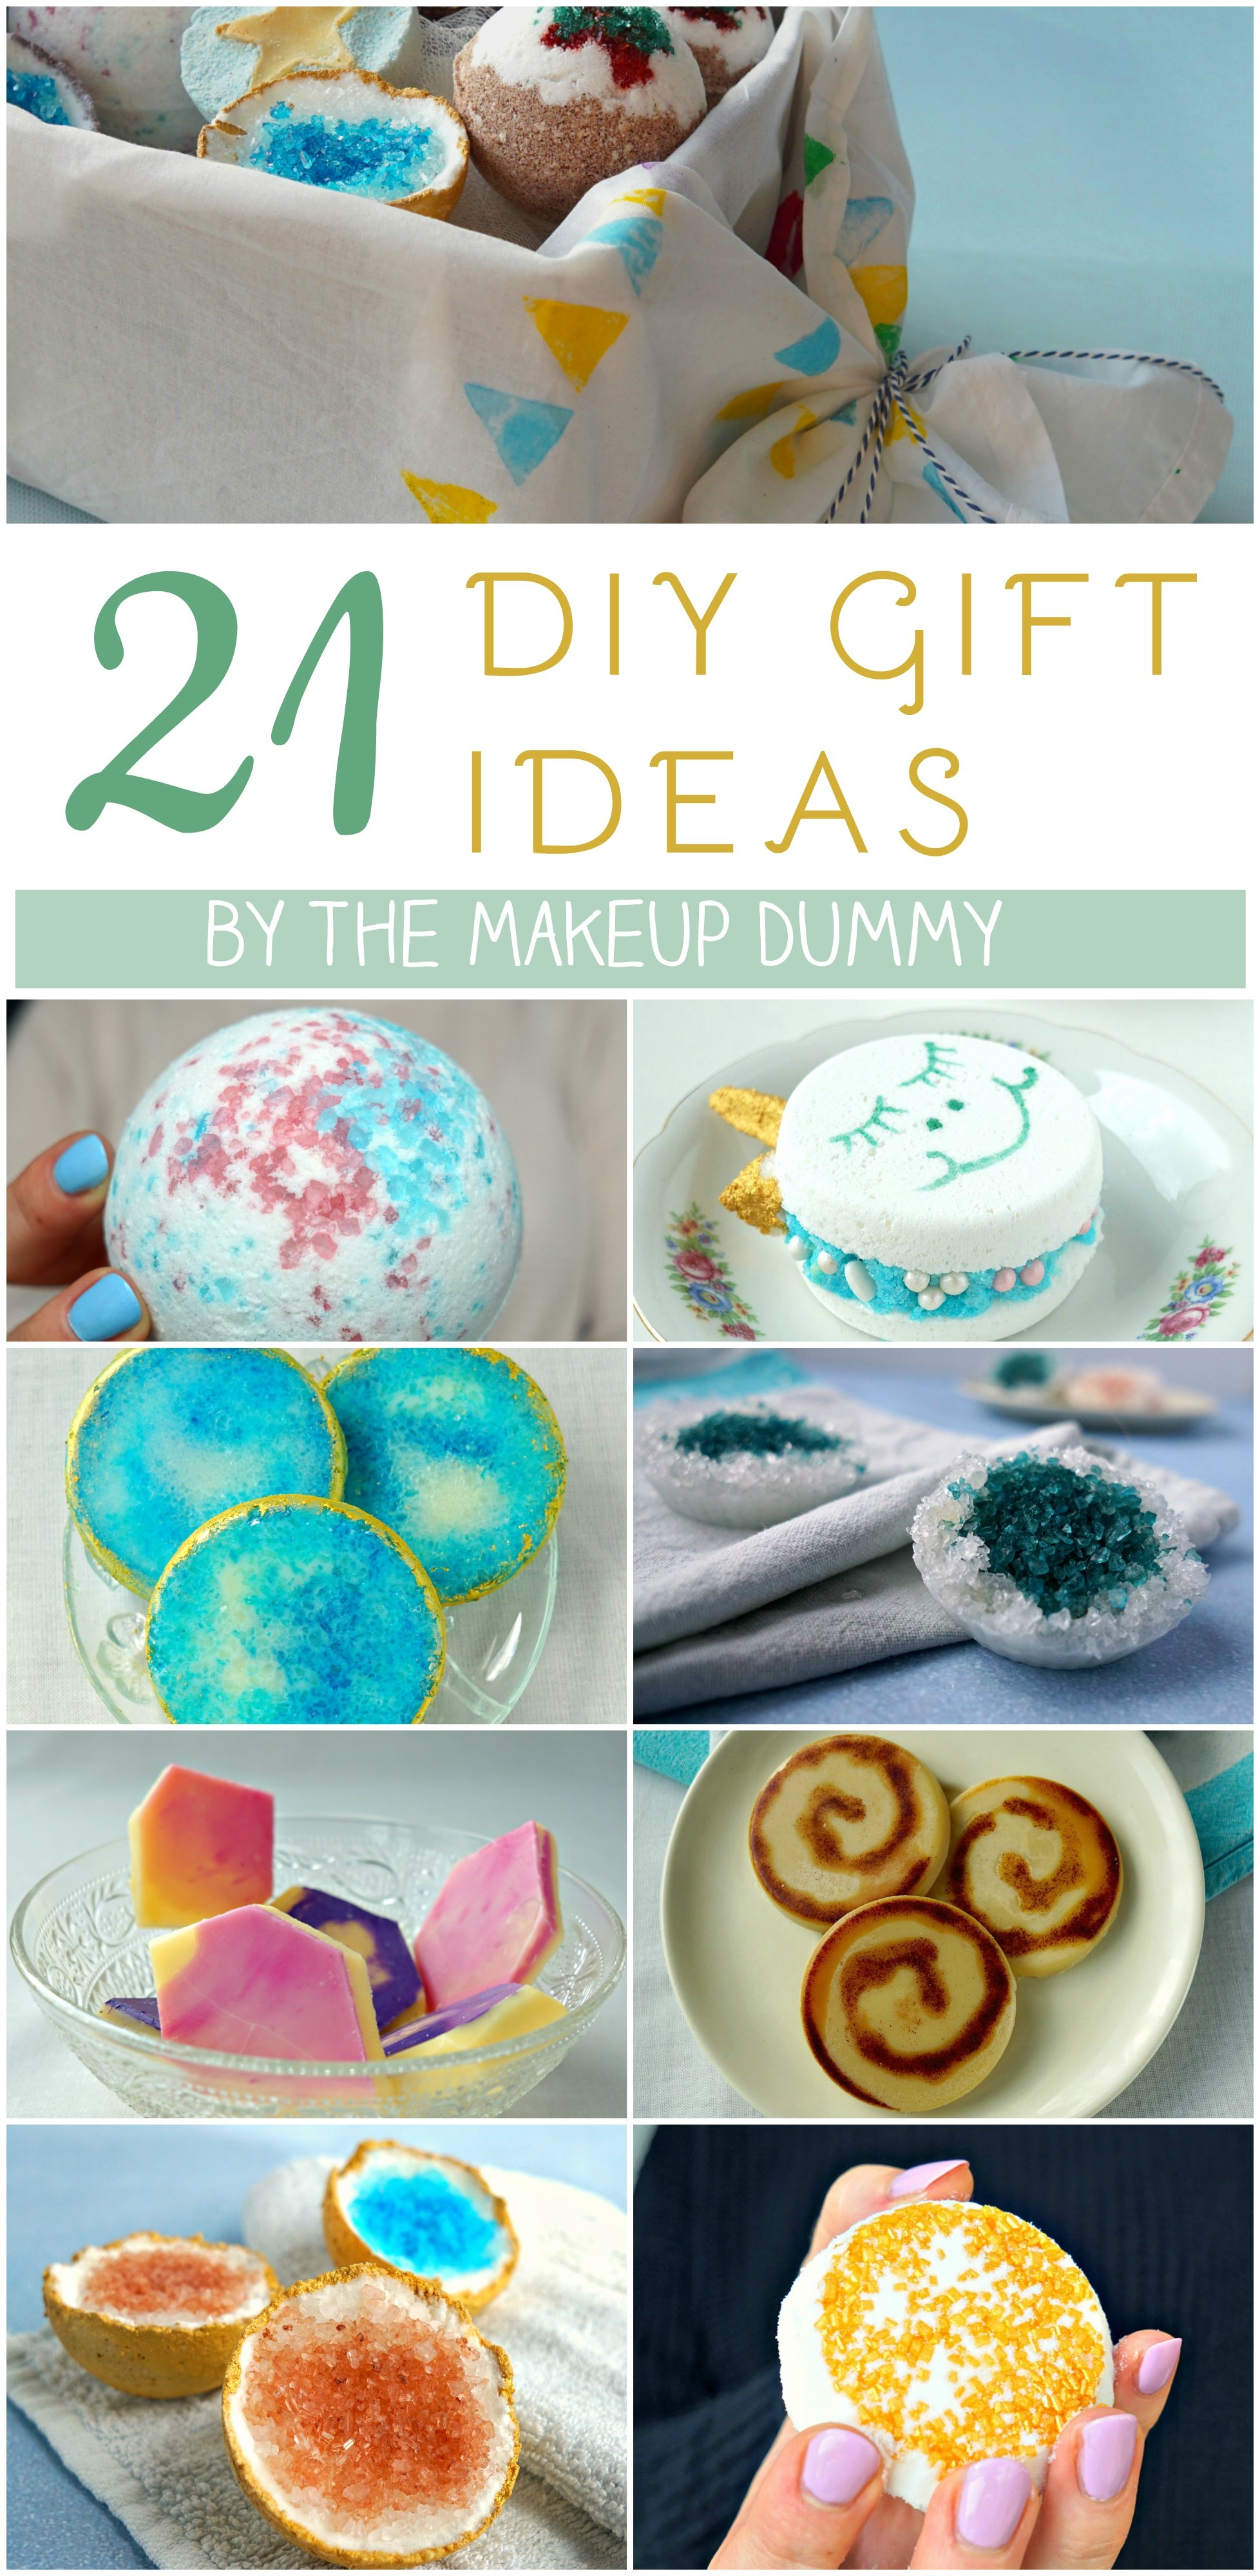 21 DIY Christmas Gift Ideas to make by The Makeup Dummy #diygifts #christmas